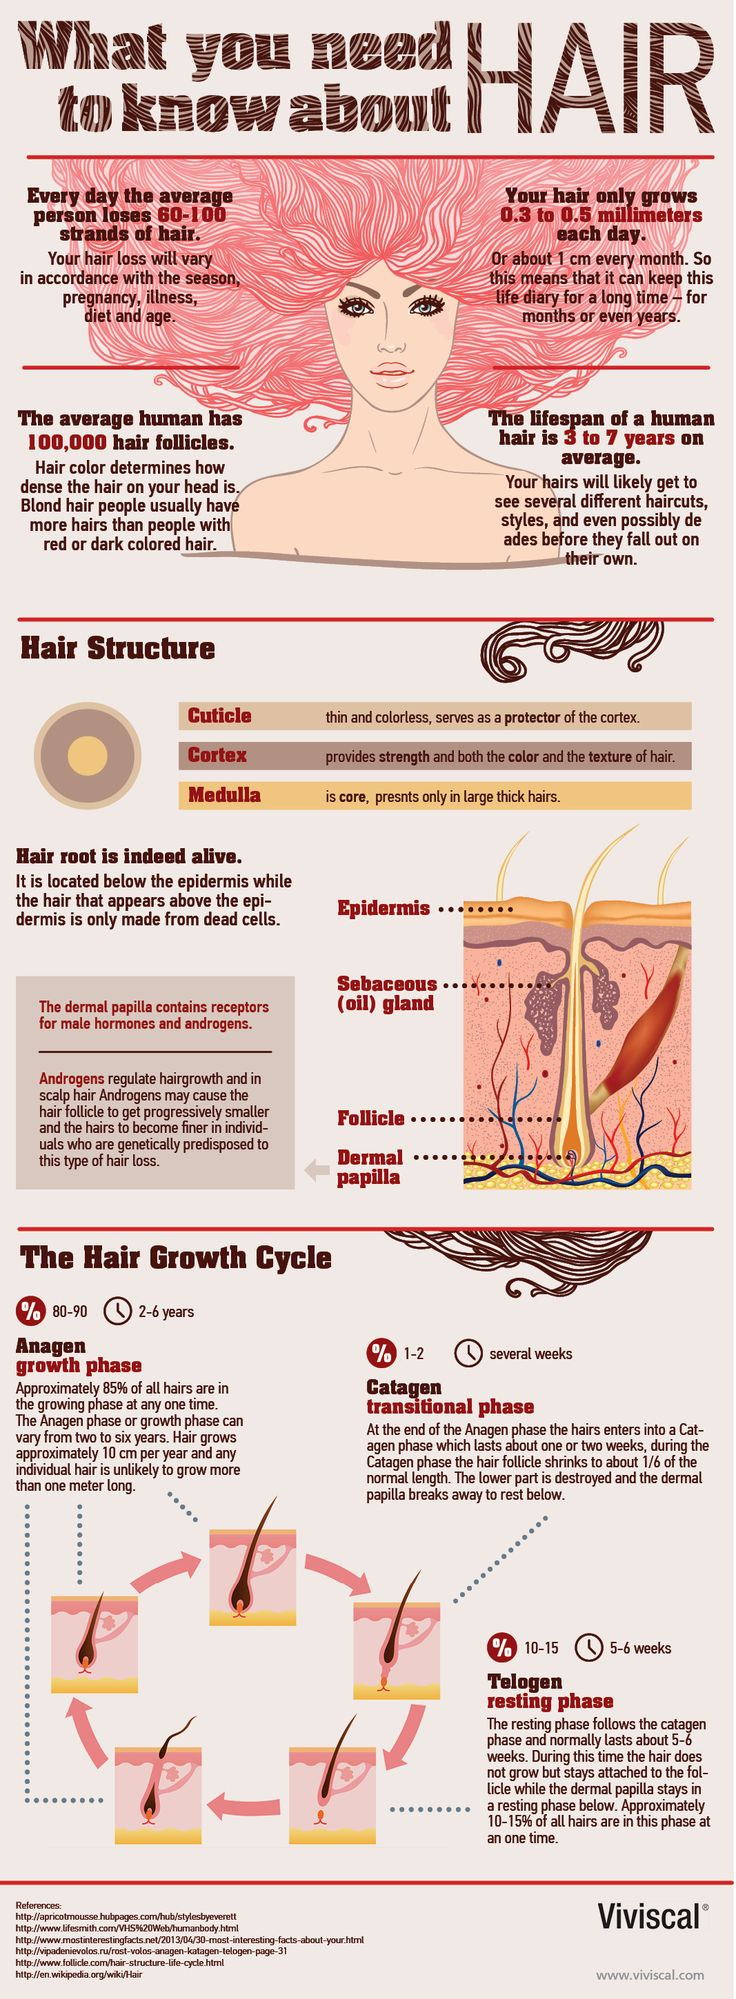 Some interesting facts about #hair. Image shows hair structure and how hair grow. #infographic from www.solidus.pro